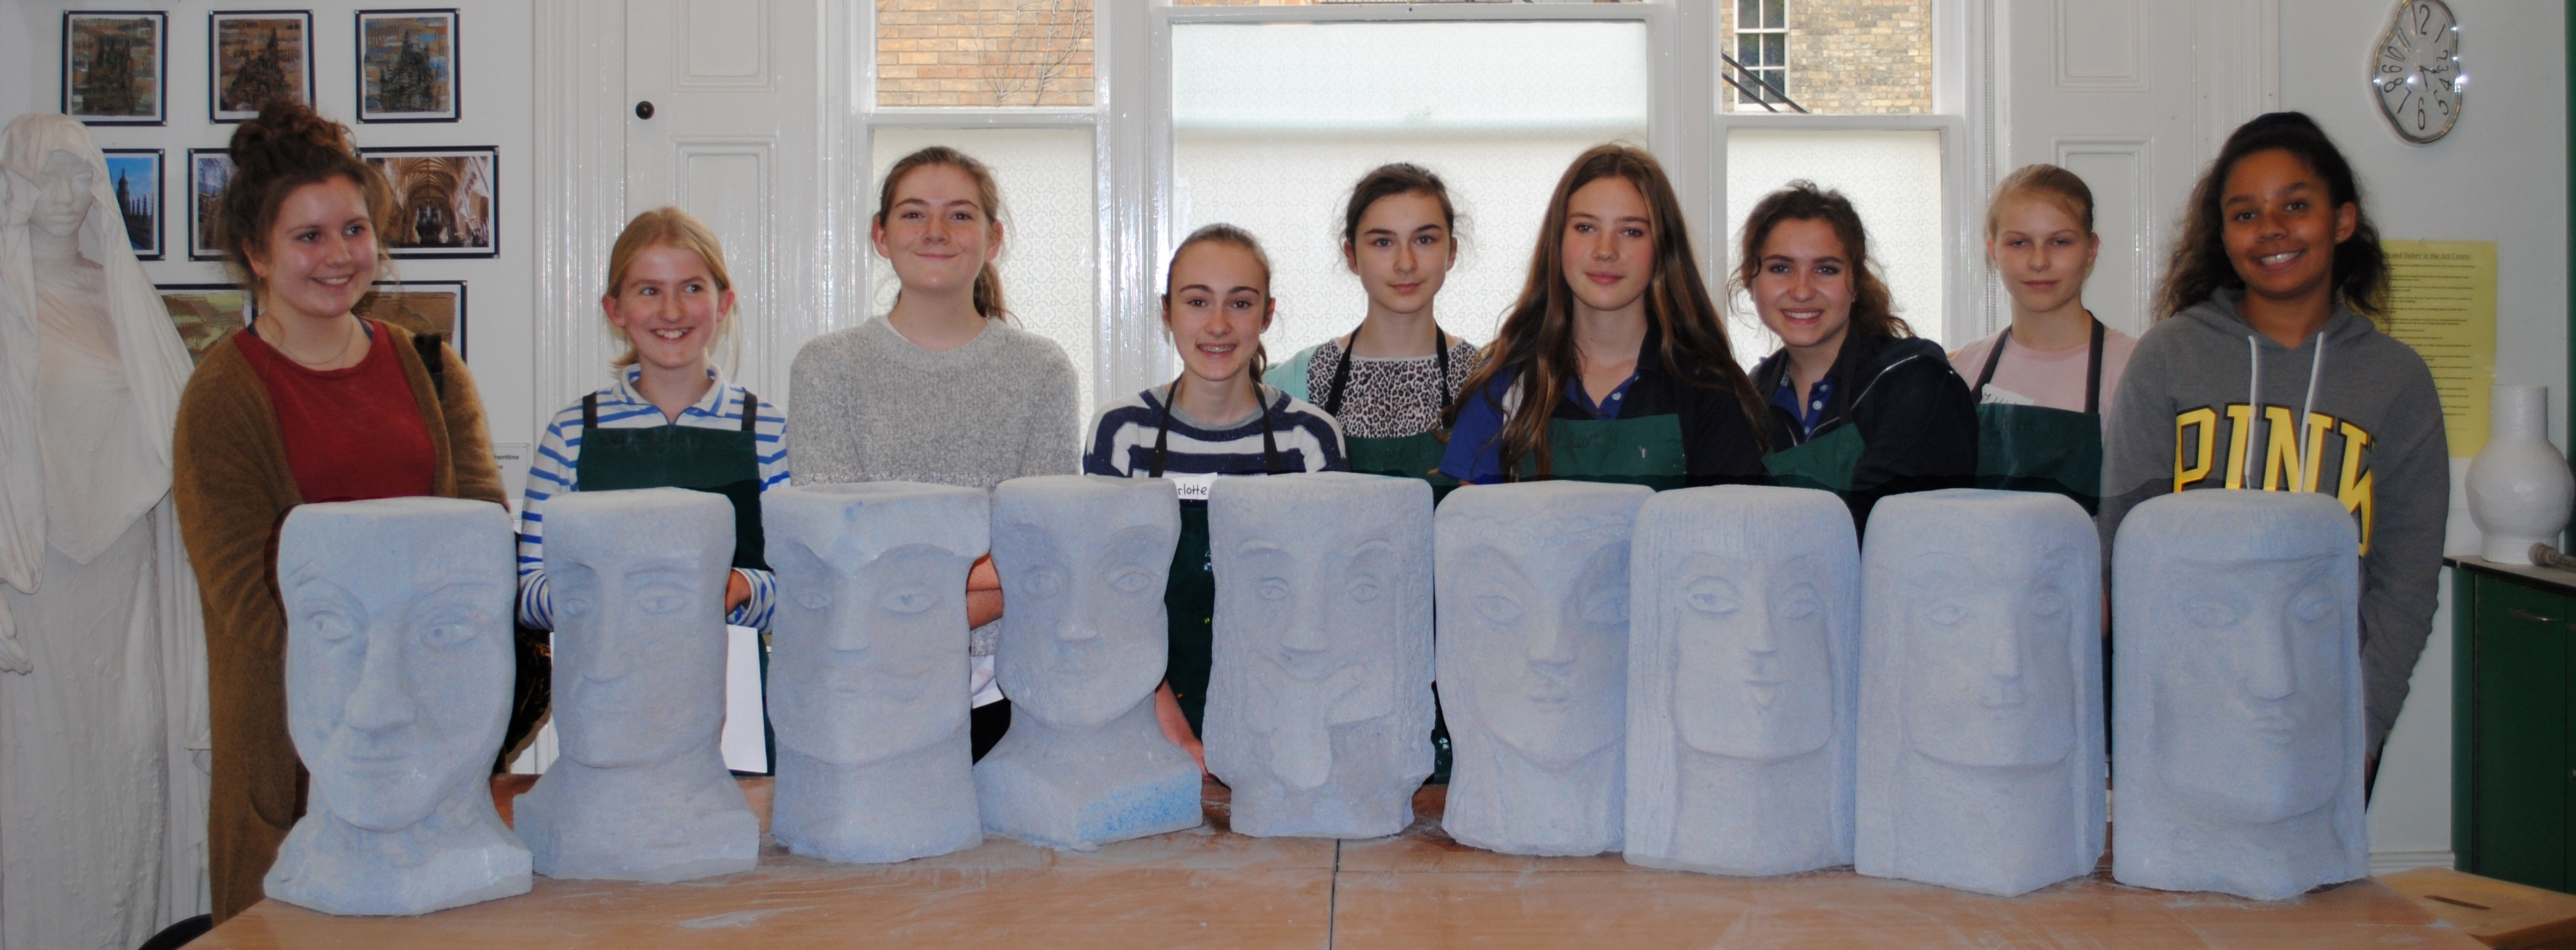 Stone-carving scholars